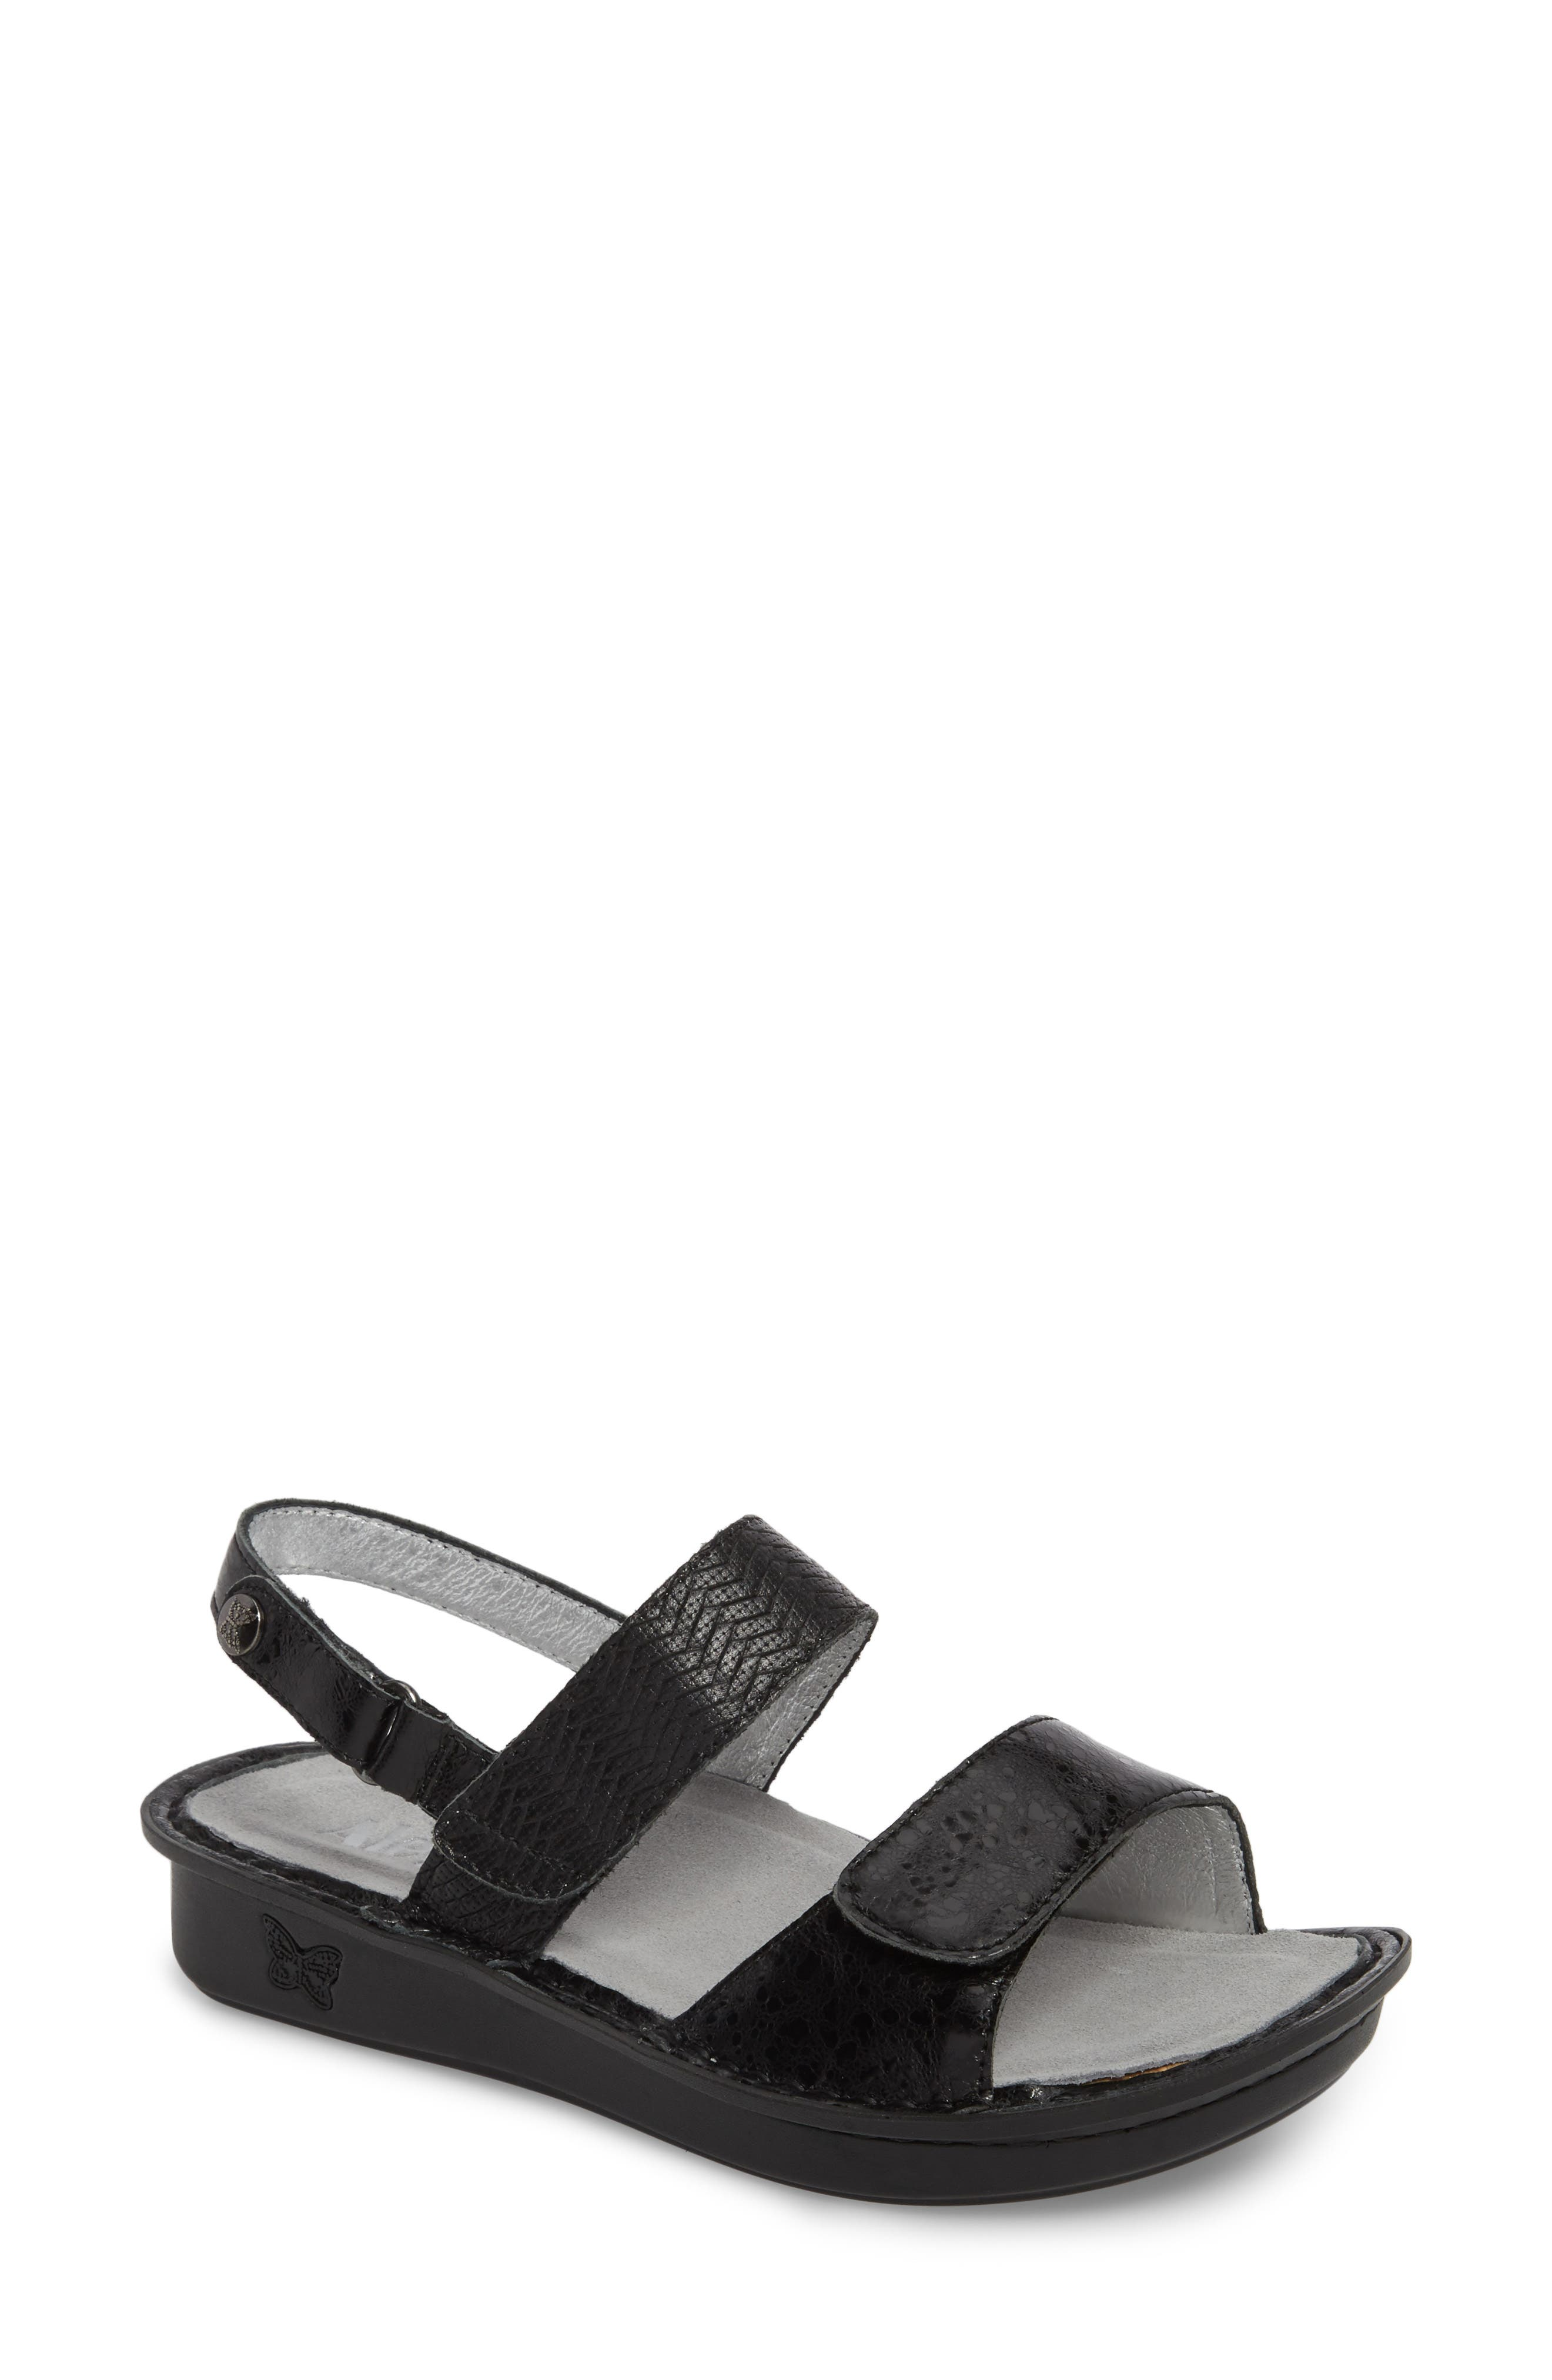 'Verona' Sandal,                         Main,                         color, BRAIDED BLACK LEATHER